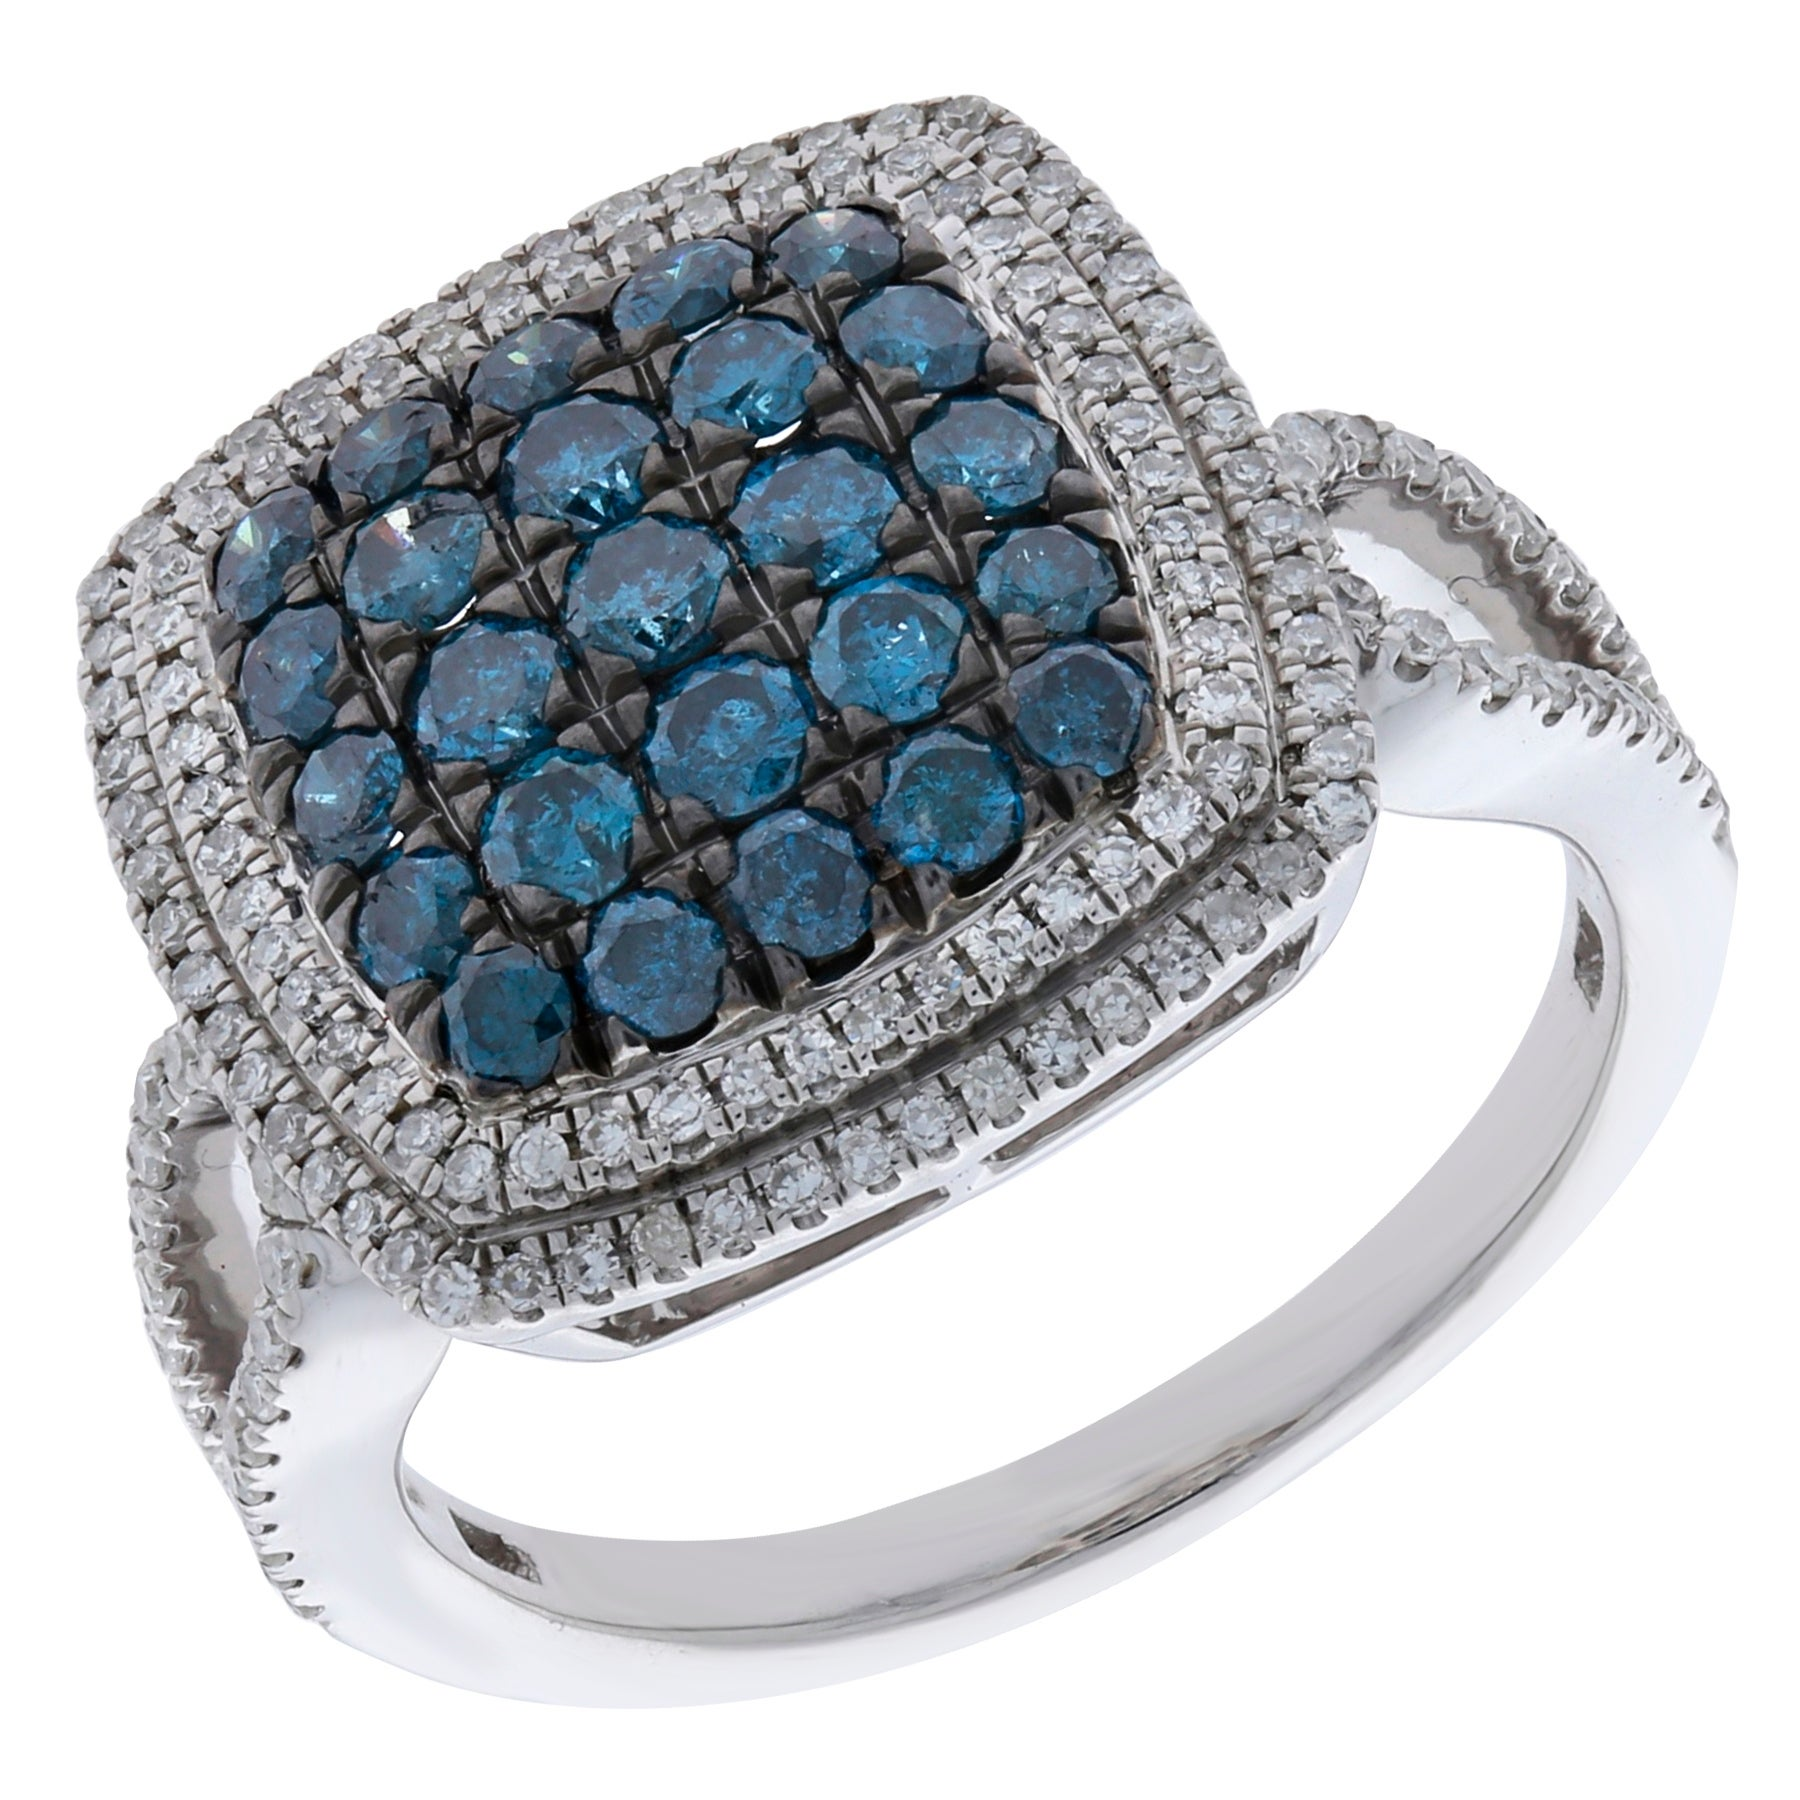 Prism Jewel 1.03 TCW Blue Color Diamond With Diamond Cluster Ring, 925 Sterling Silver - Thumbnail 0